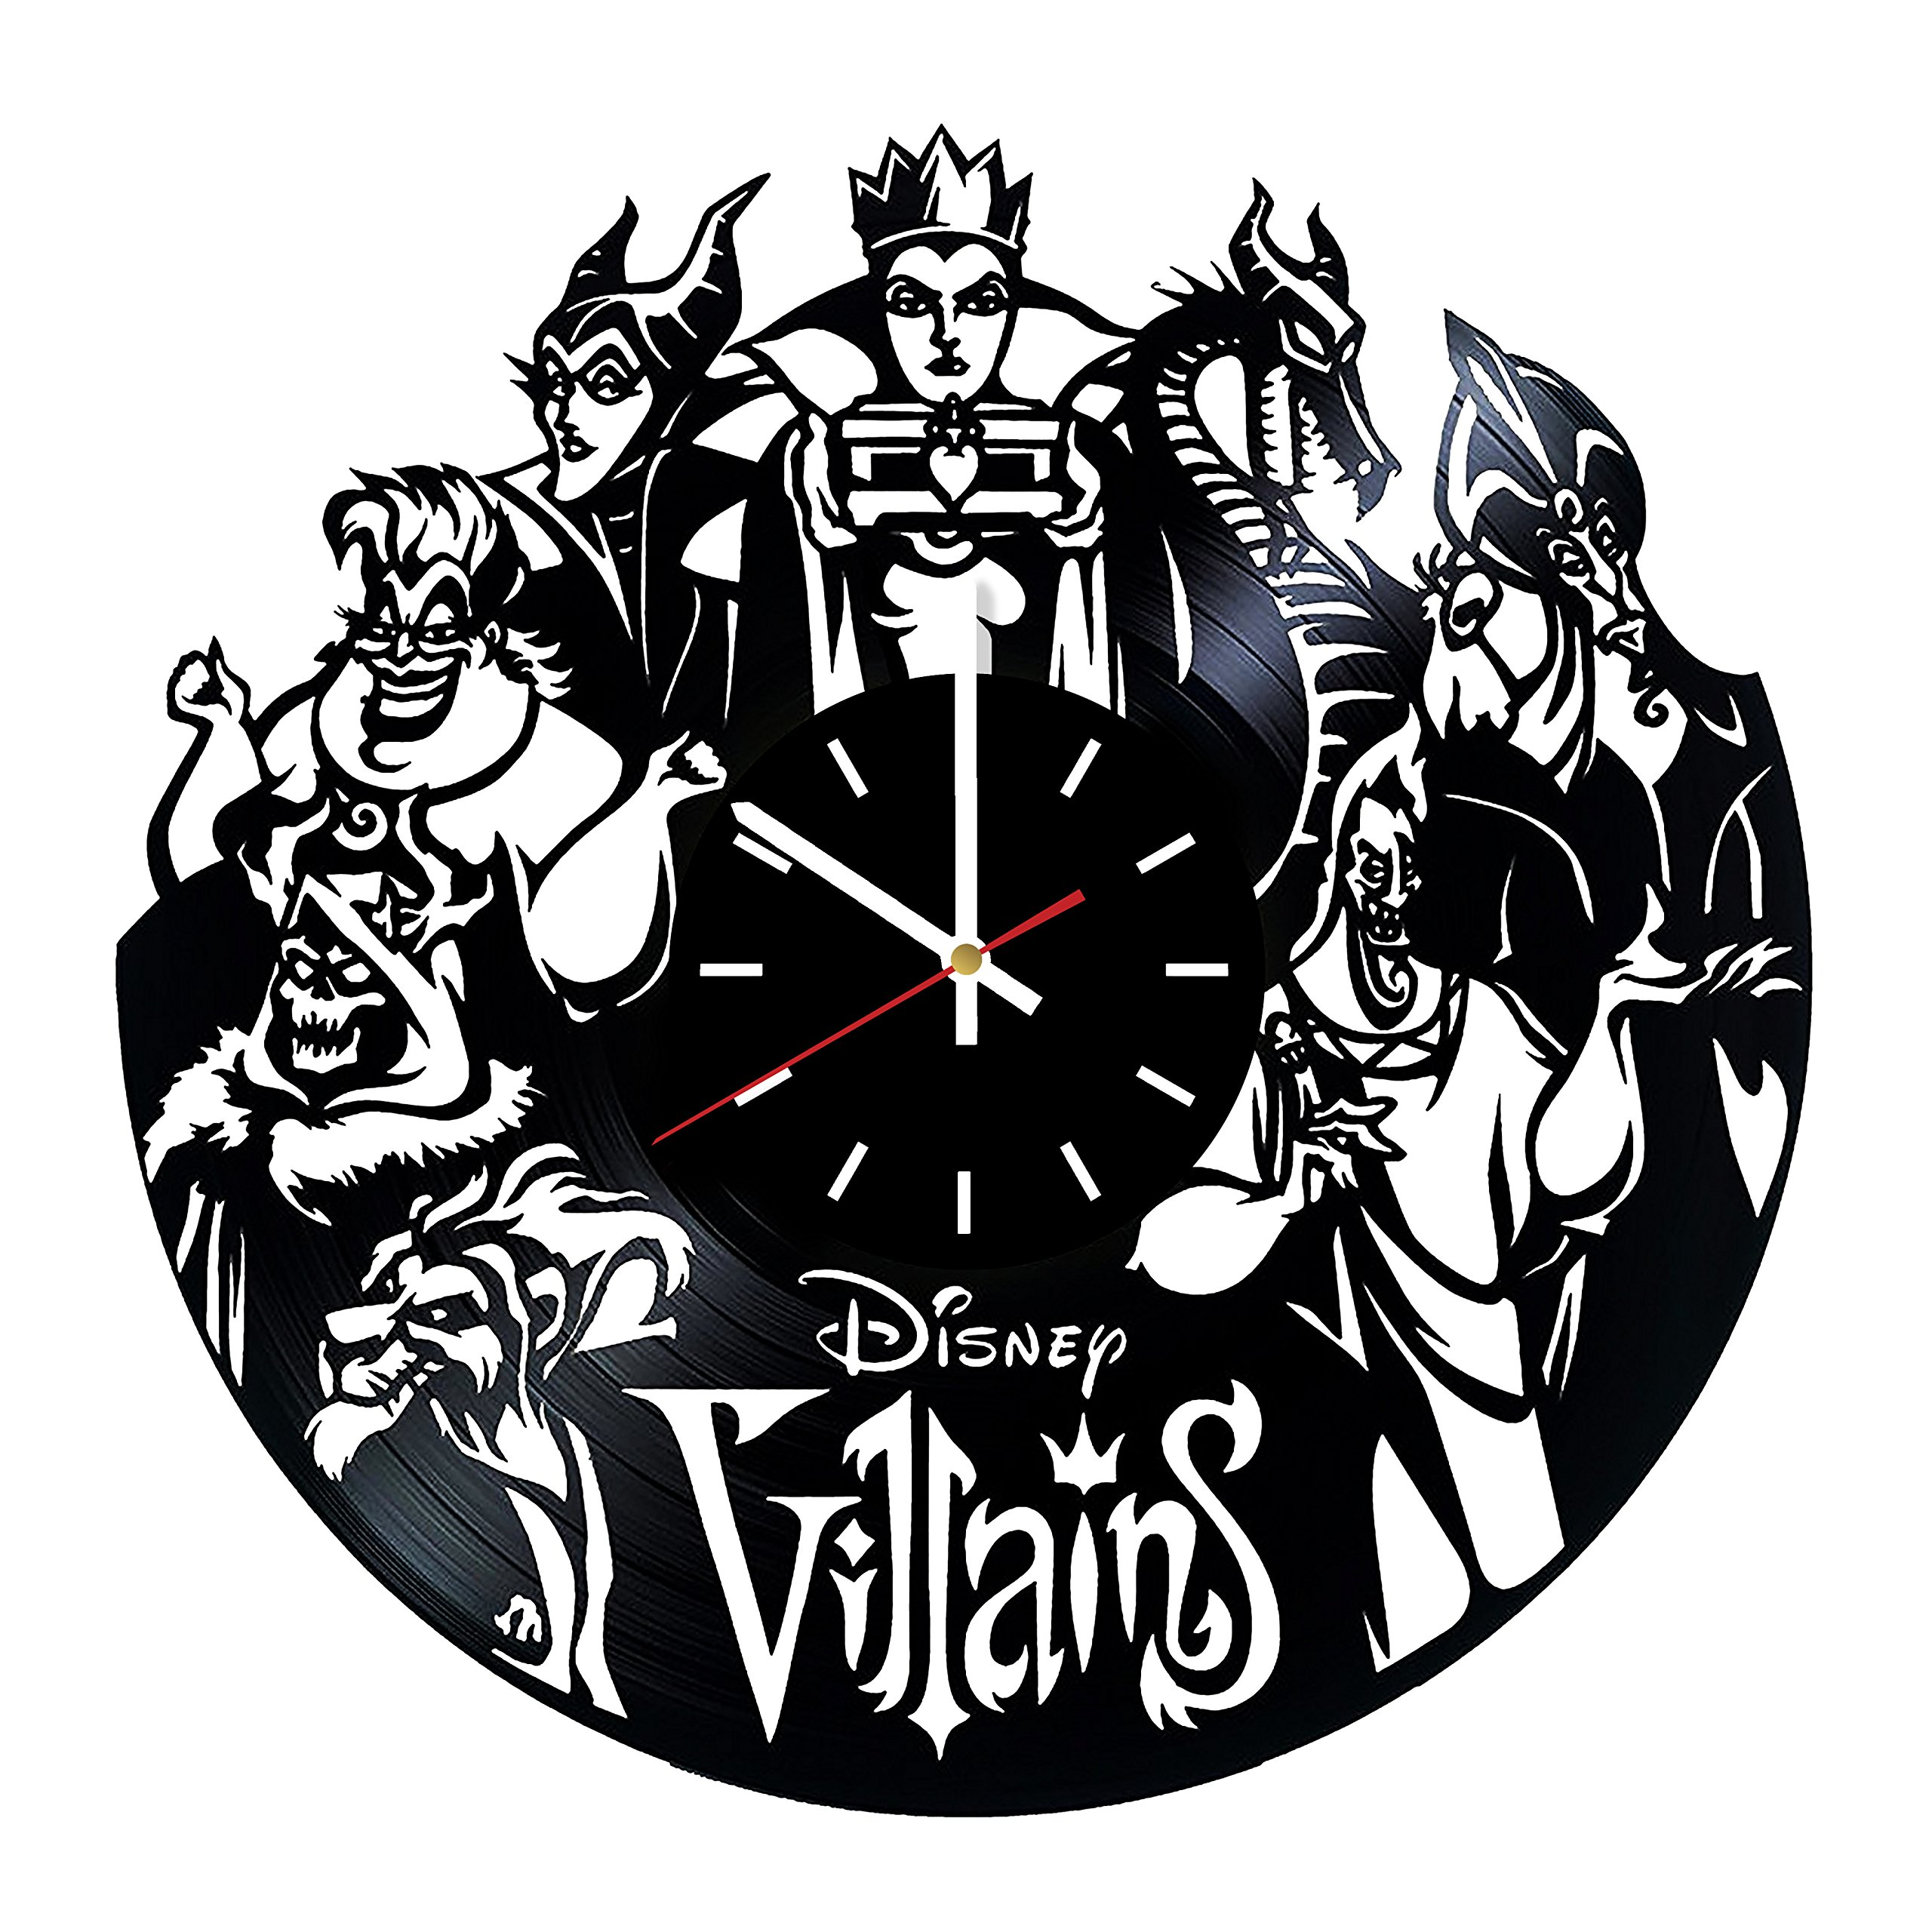 Everyday Arts Welcome Disney Villains Design Vinyl Record Wall Clock - Get Unique Bedroom or Garage Wall Decor - Gift Ideas for Friends, Brother – Disney Villains Unique Modern Art by Everyday Arts